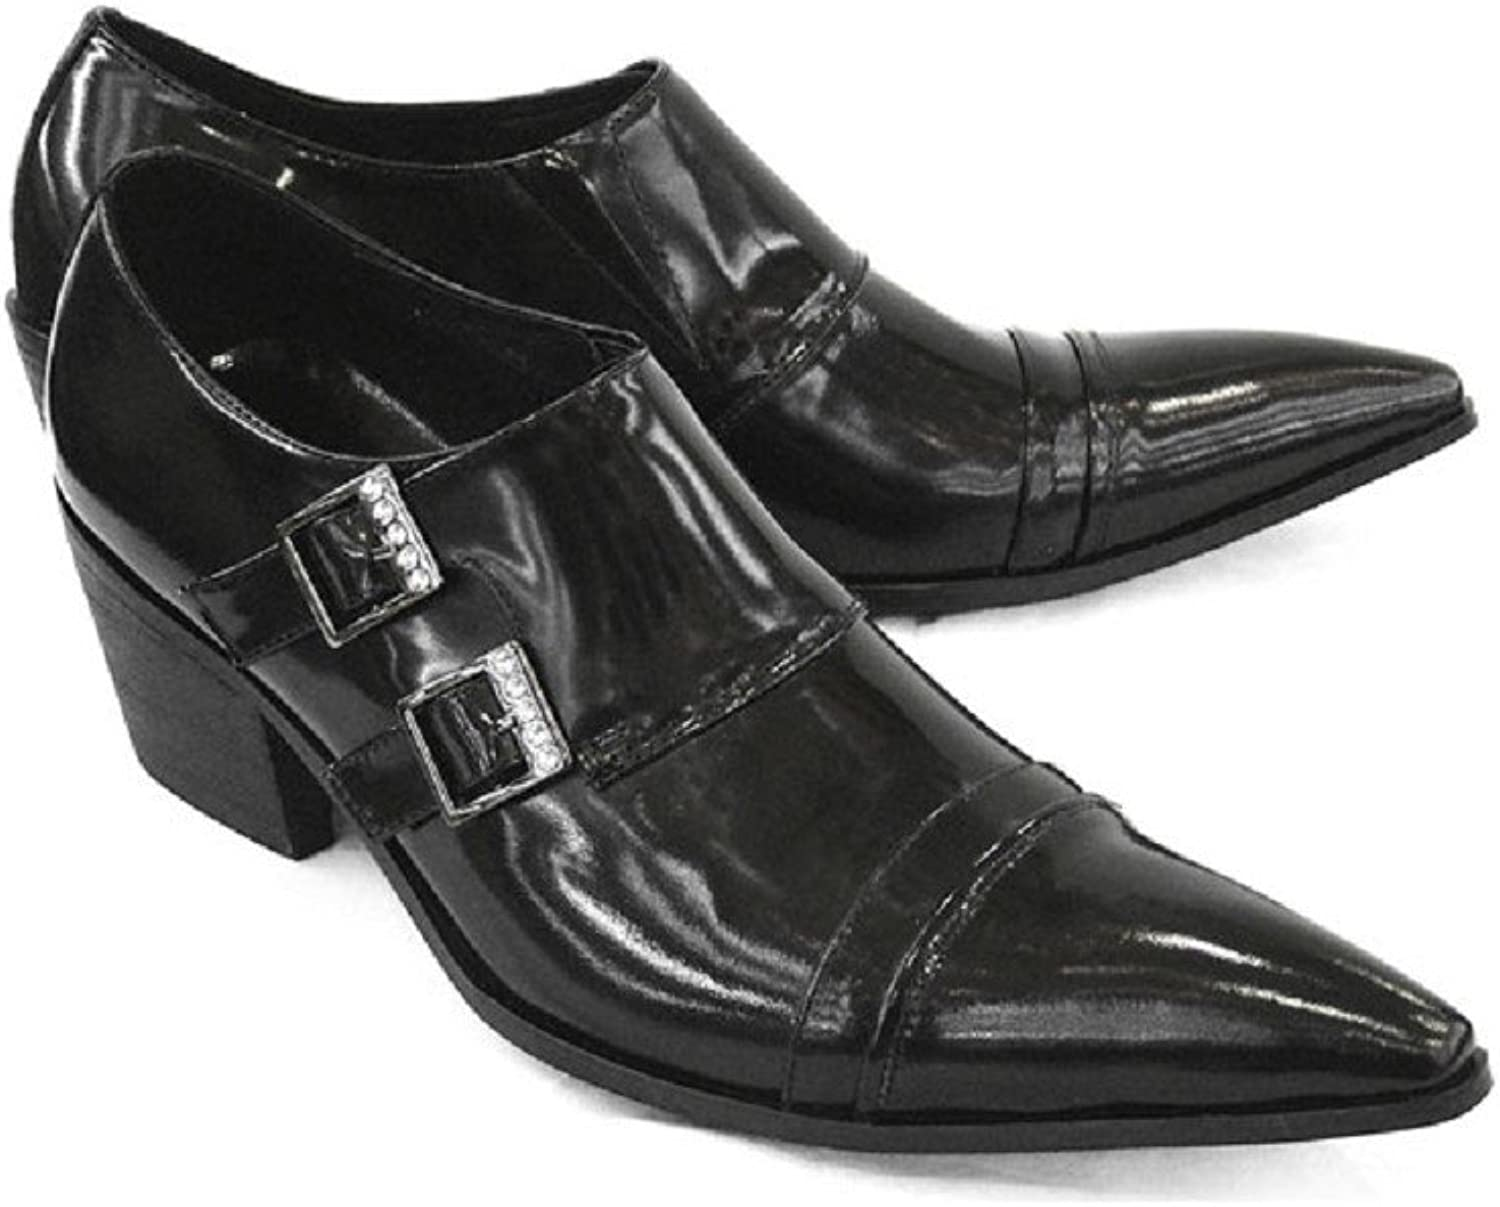 US Size 5-12 New Black Leather Pointed Toe Dress Mens Monk Strap Loafers shoes